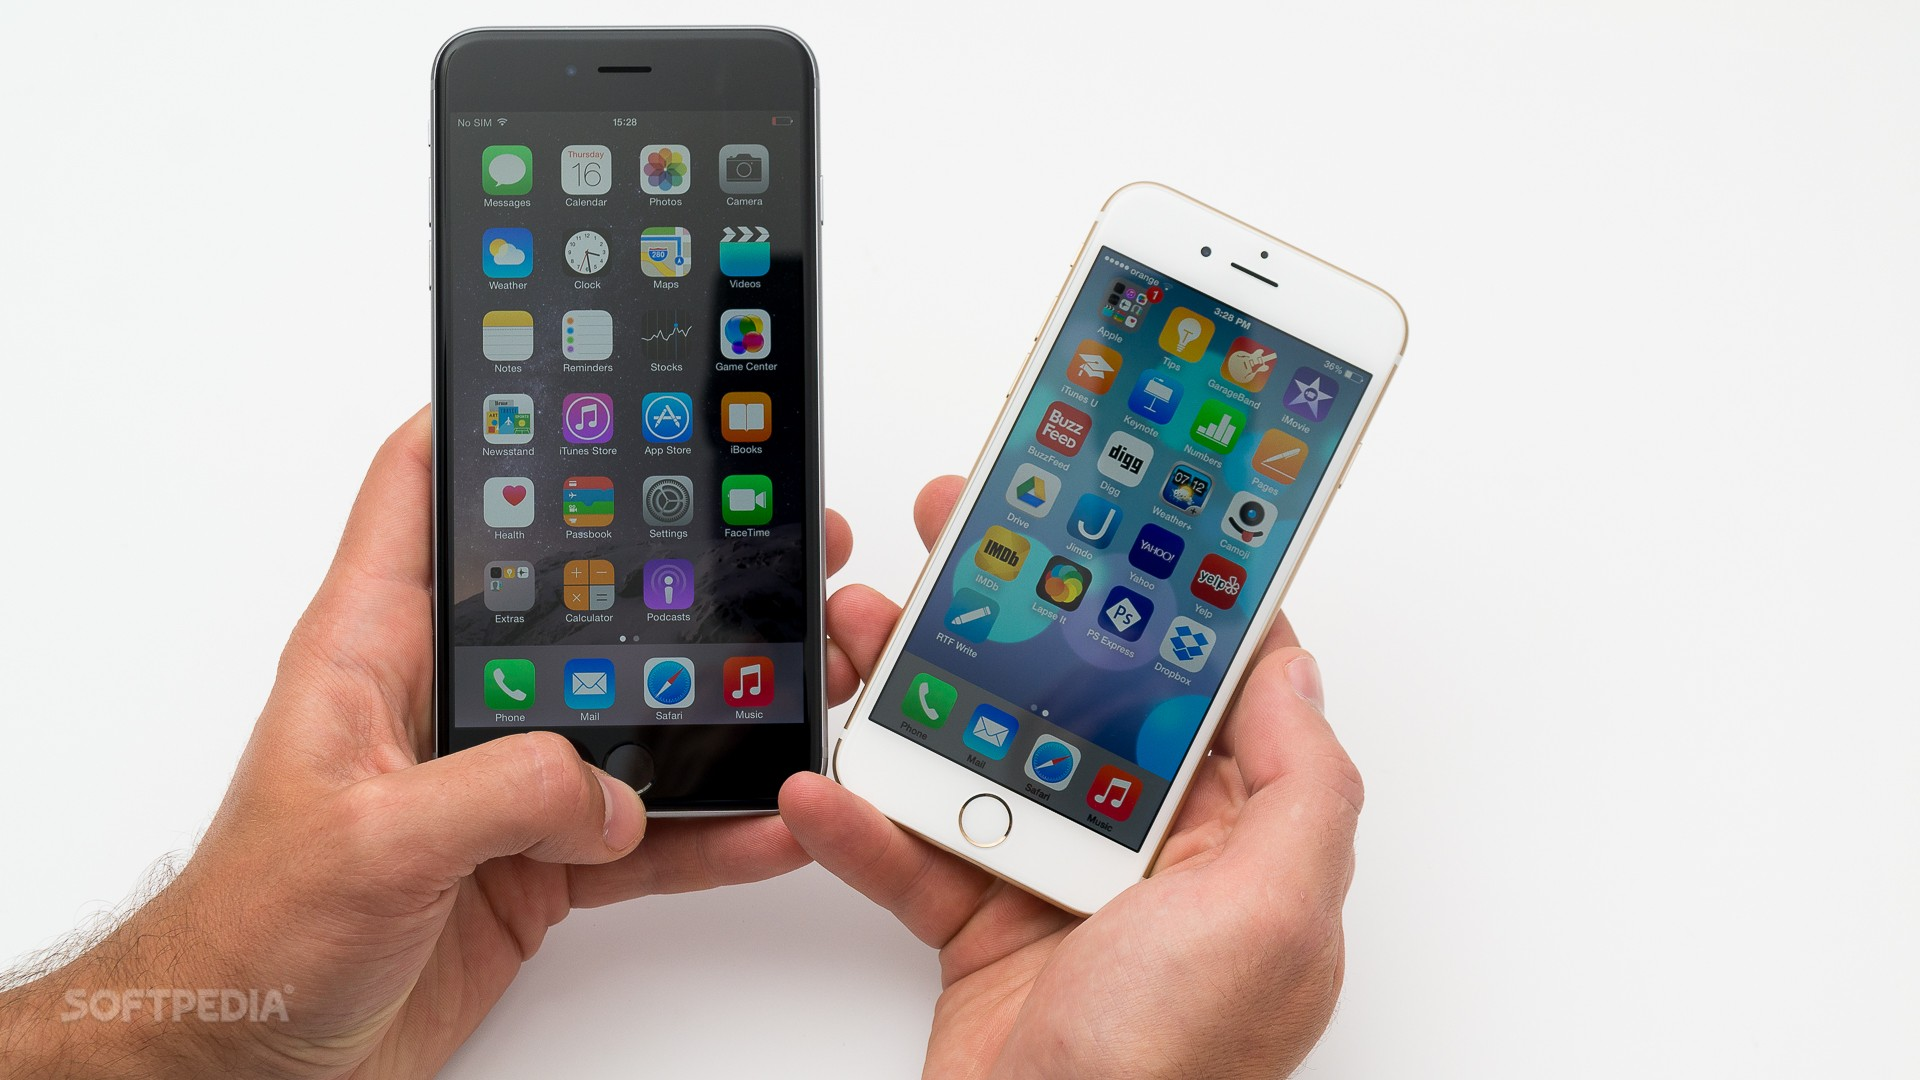 IPhone 6 Plus And IPhone 6, Both Without A LED Notification Light ... Ideas